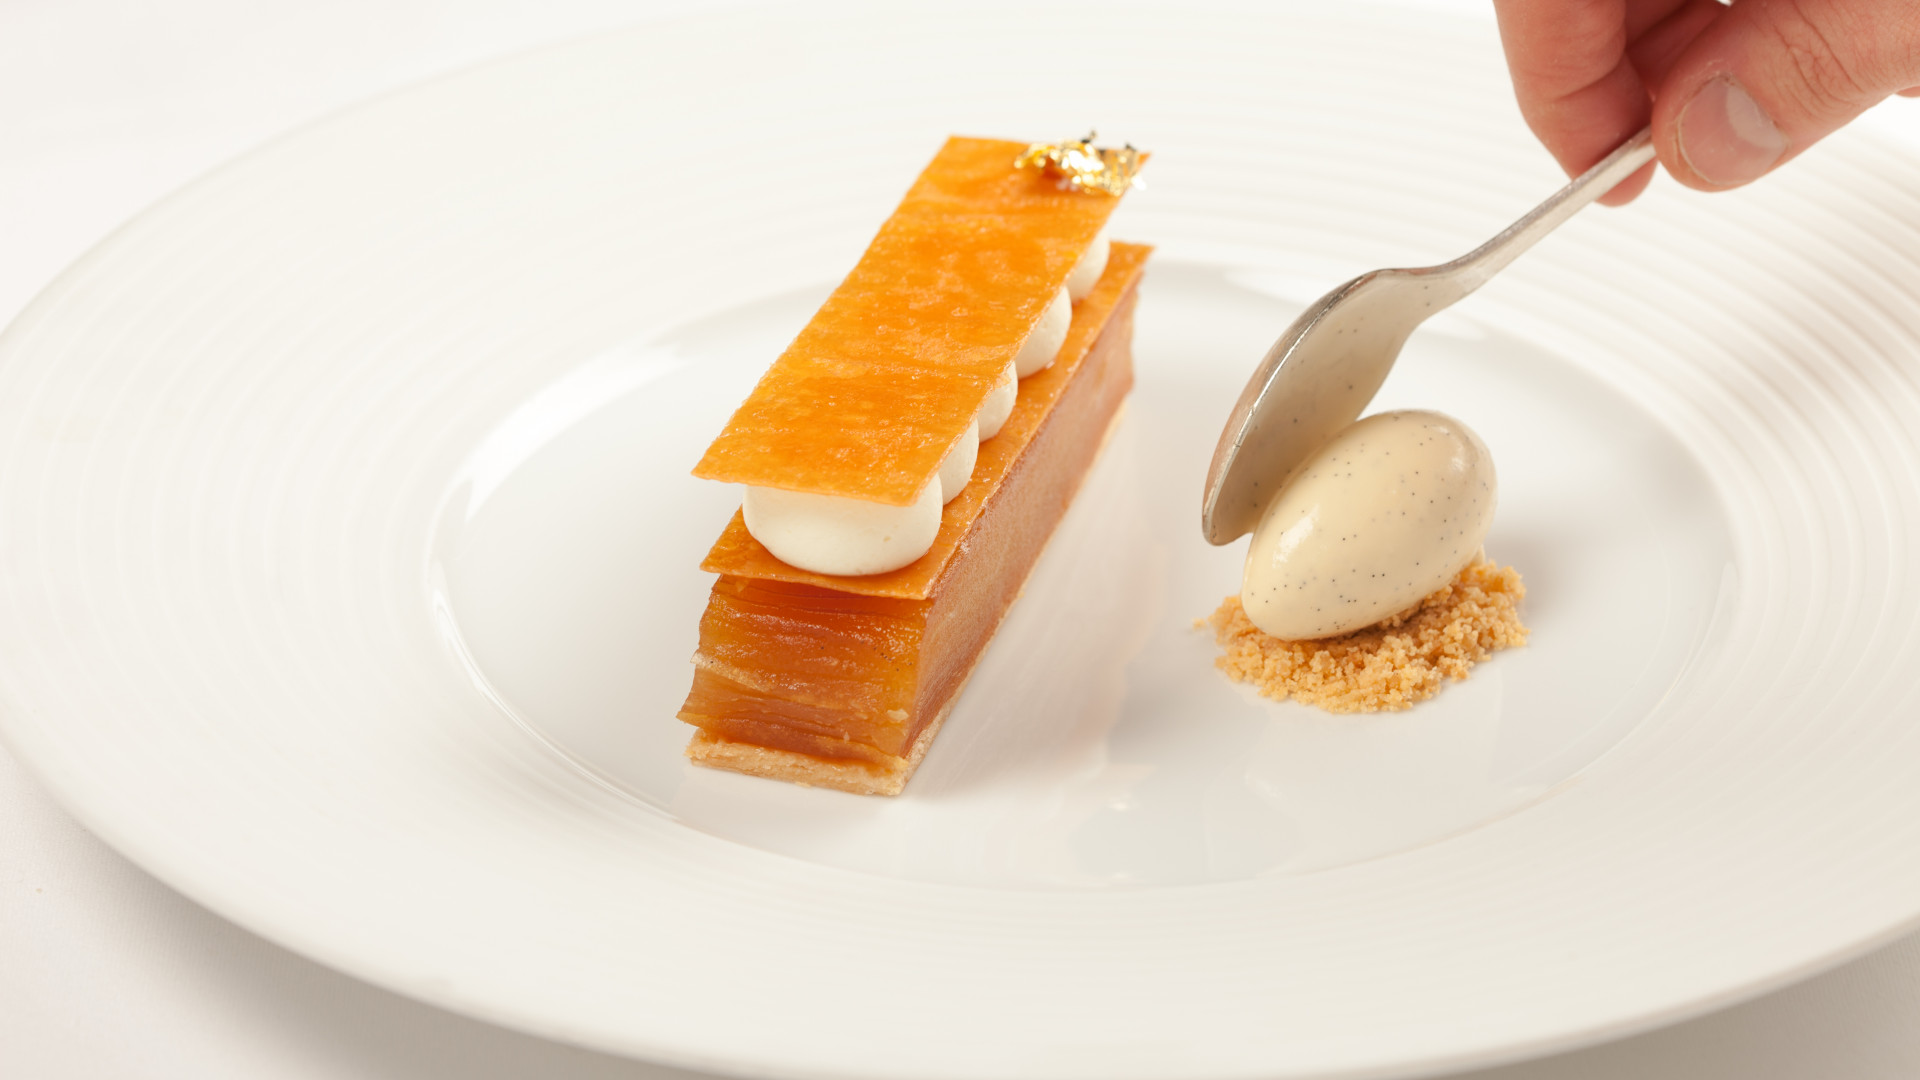 Apple millefeuille from the Ritz Restaurant, winner of the Food Service Award